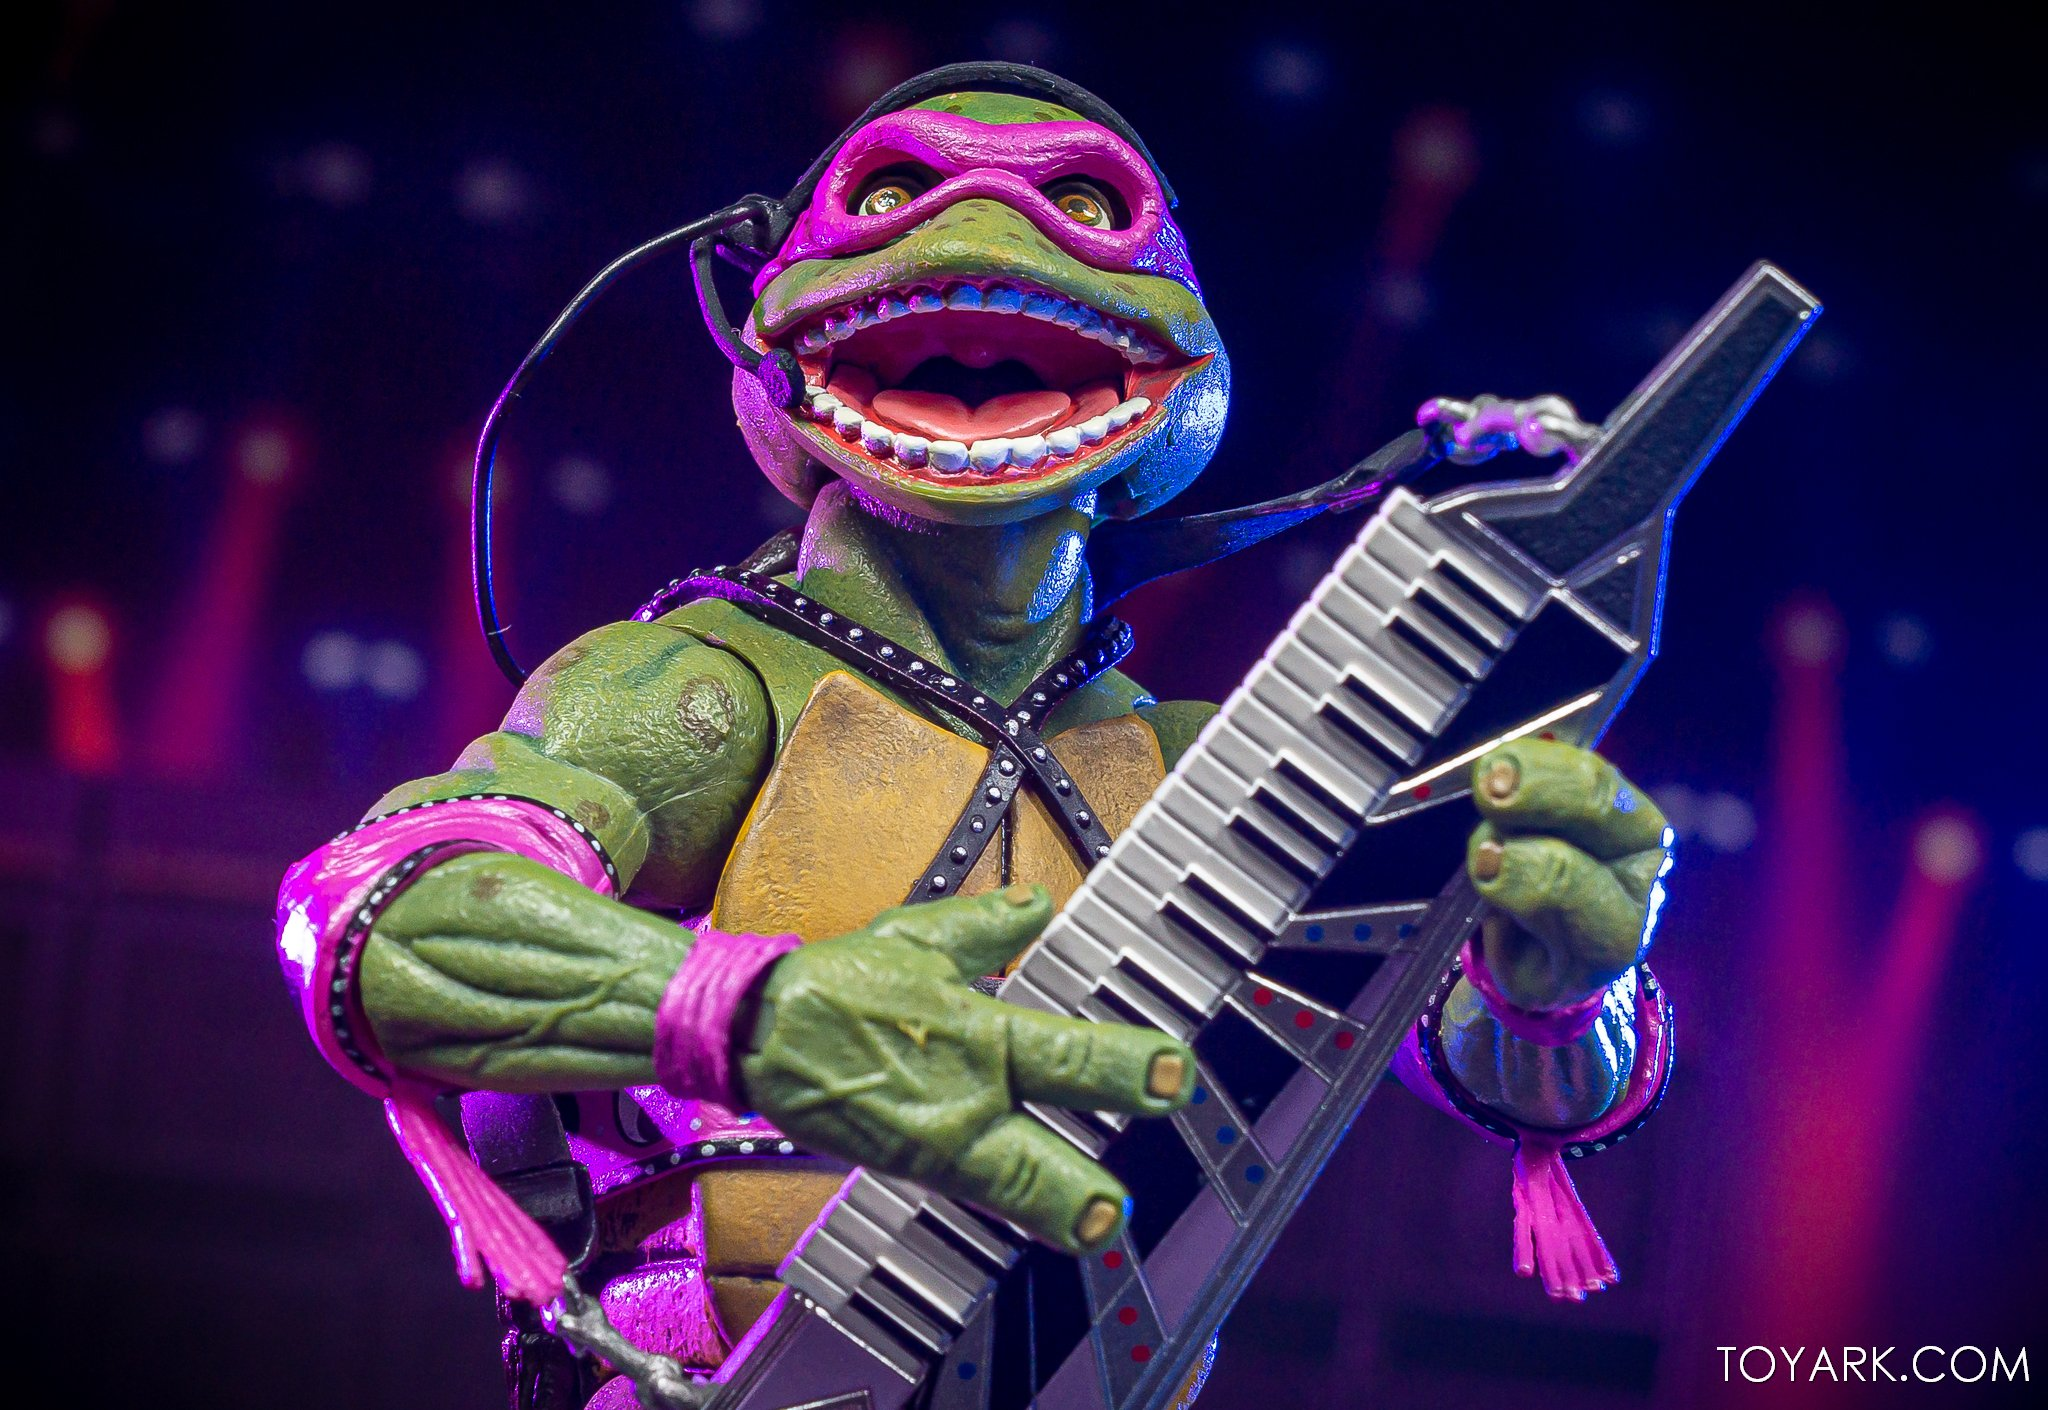 https://news.toyark.com/wp-content/uploads/sites/4/2020/07/SDCC-2020-TMNT-Musical-Mutagen-Tour-067.jpg